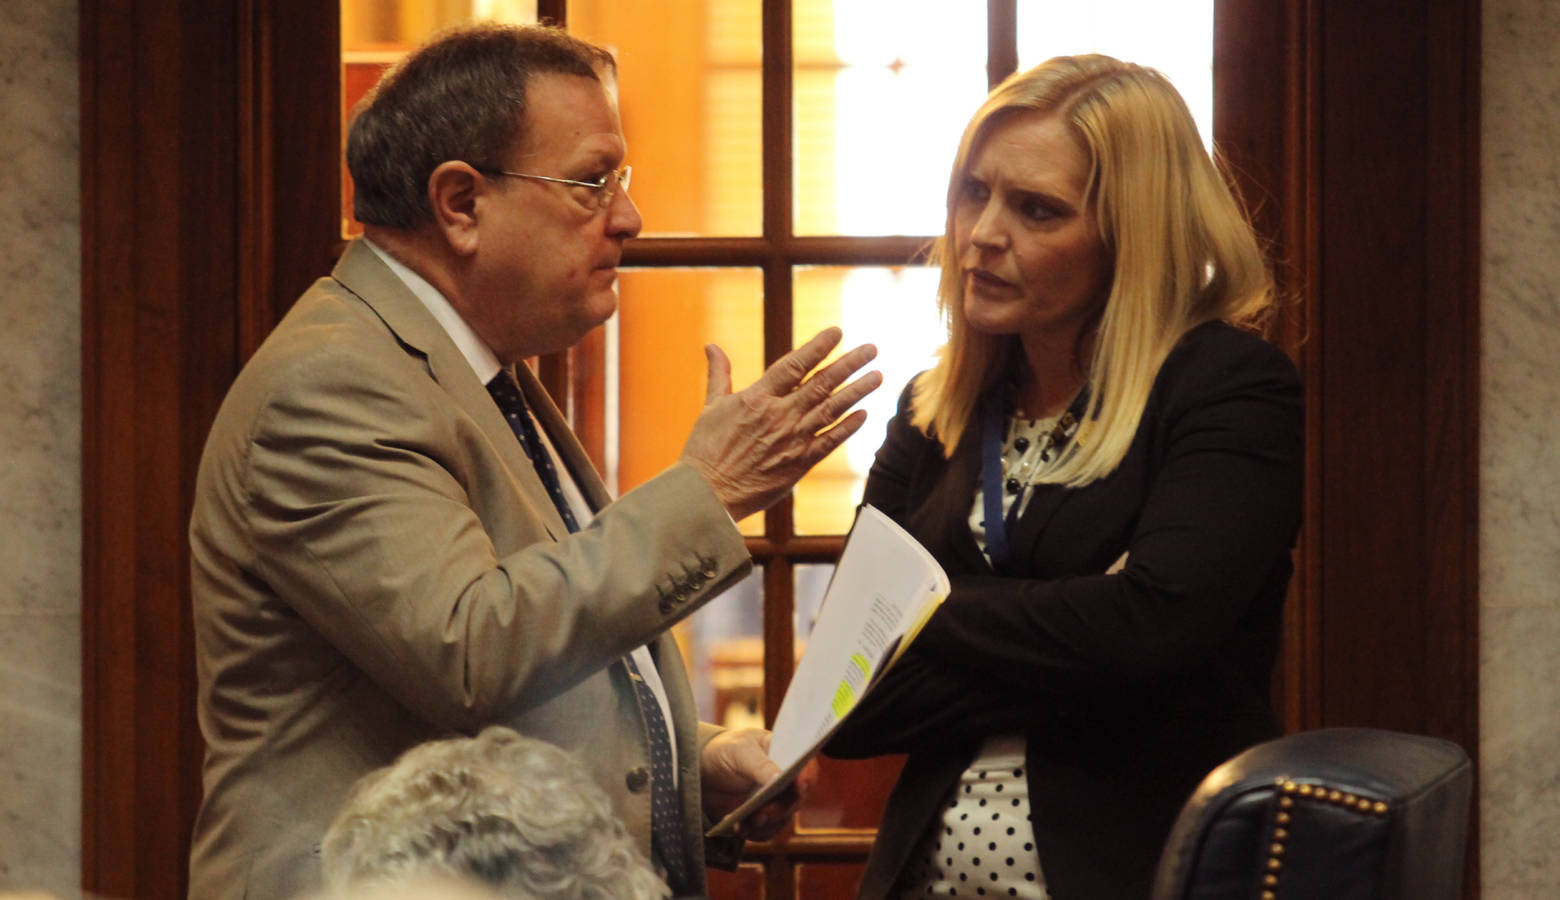 Sen. Erin Houchin (R-Salem), right, speaks to fellow Sen. Mike Young (R-Indianapolis) on the Senate floor. (Lauren Chapman/IPB News)